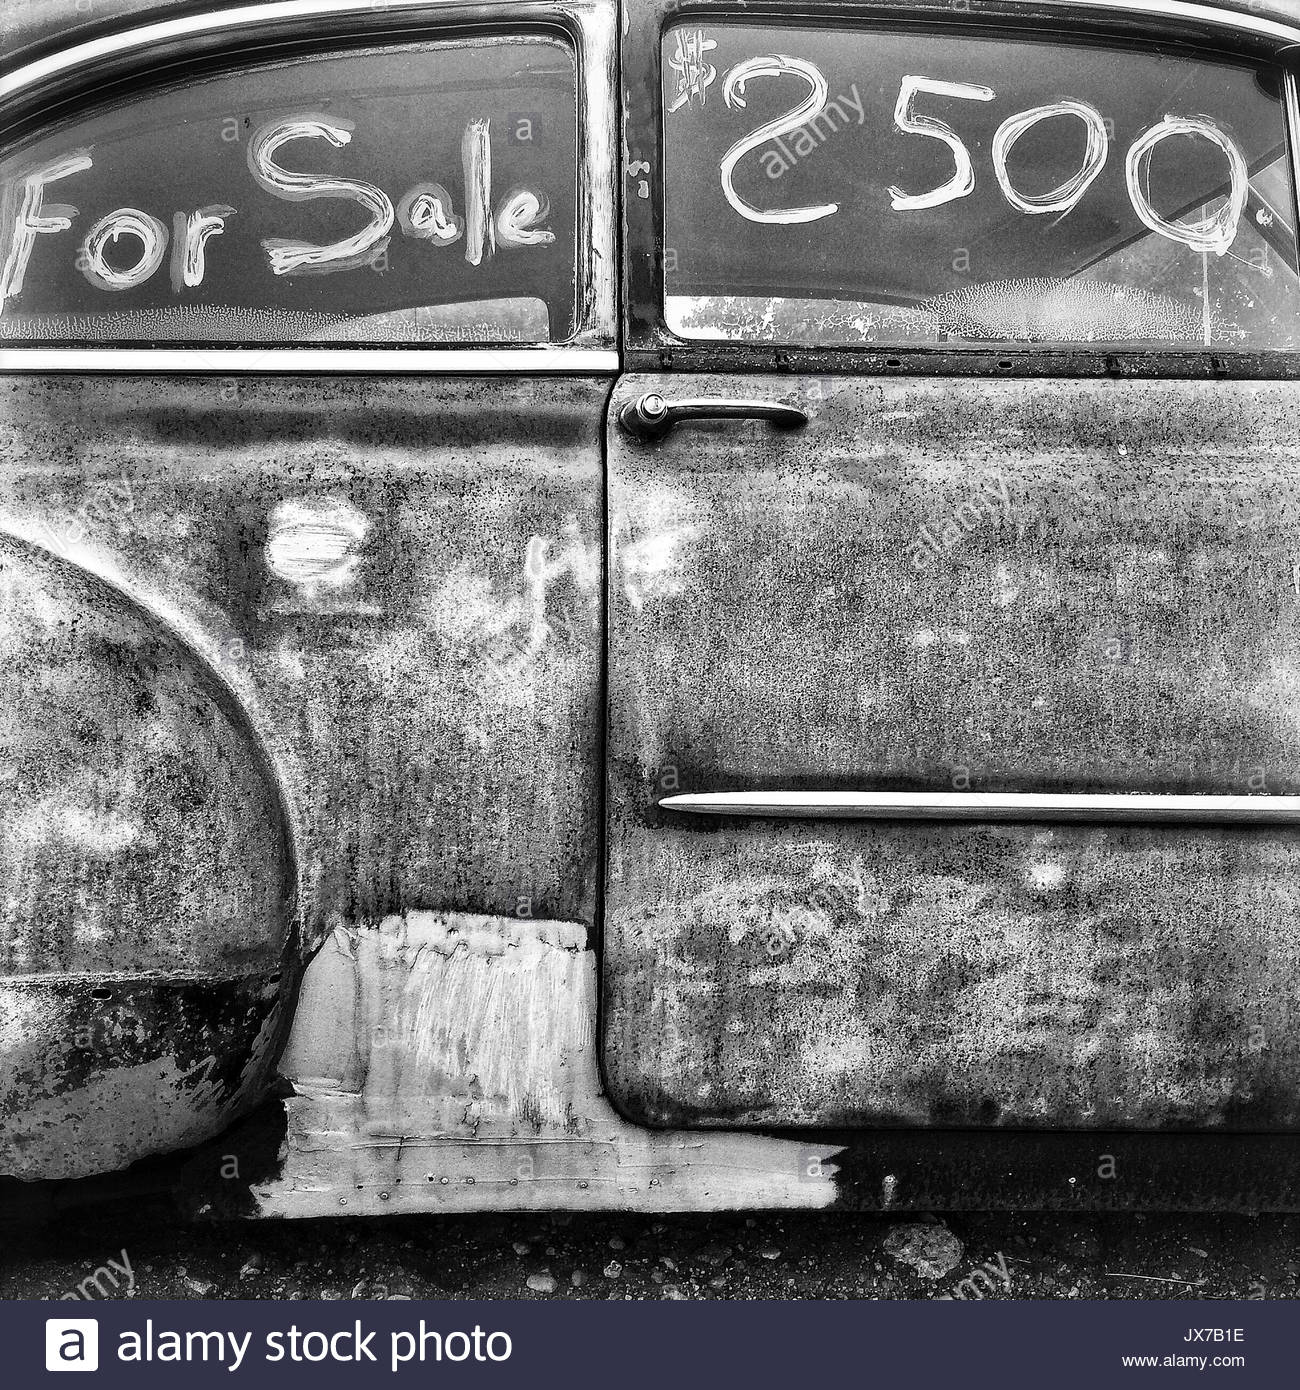 A car for sale with price written on window. - Stock Image